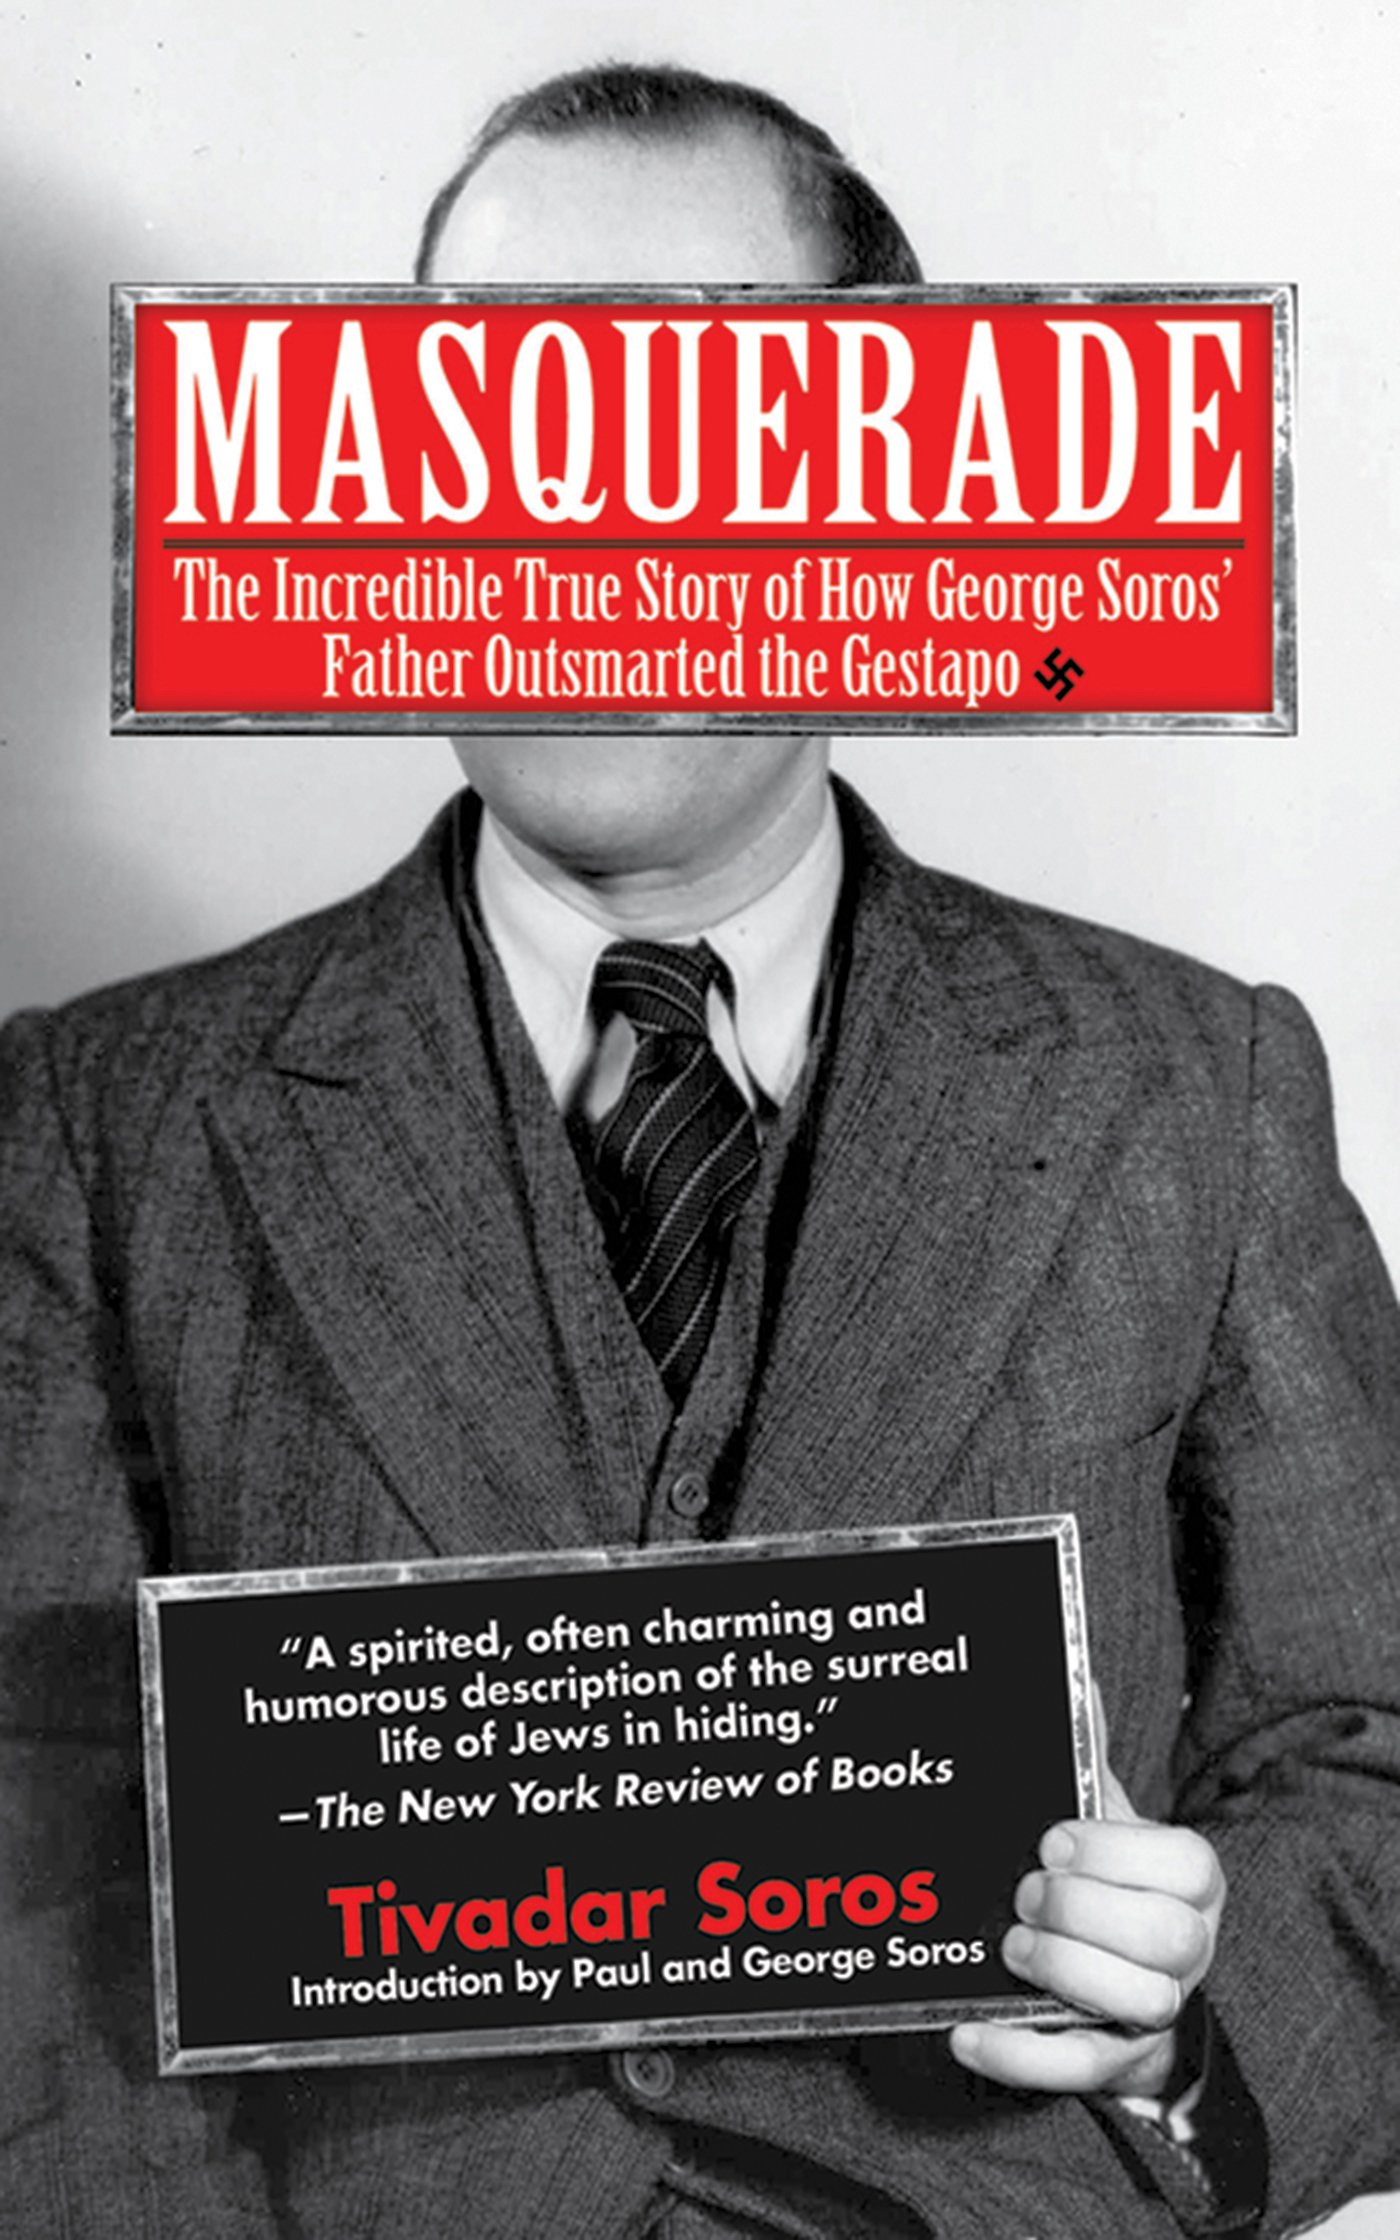 Masquerade: The Incredible True Story of How George Soros' Father Outsmarted the Gestapo pdf